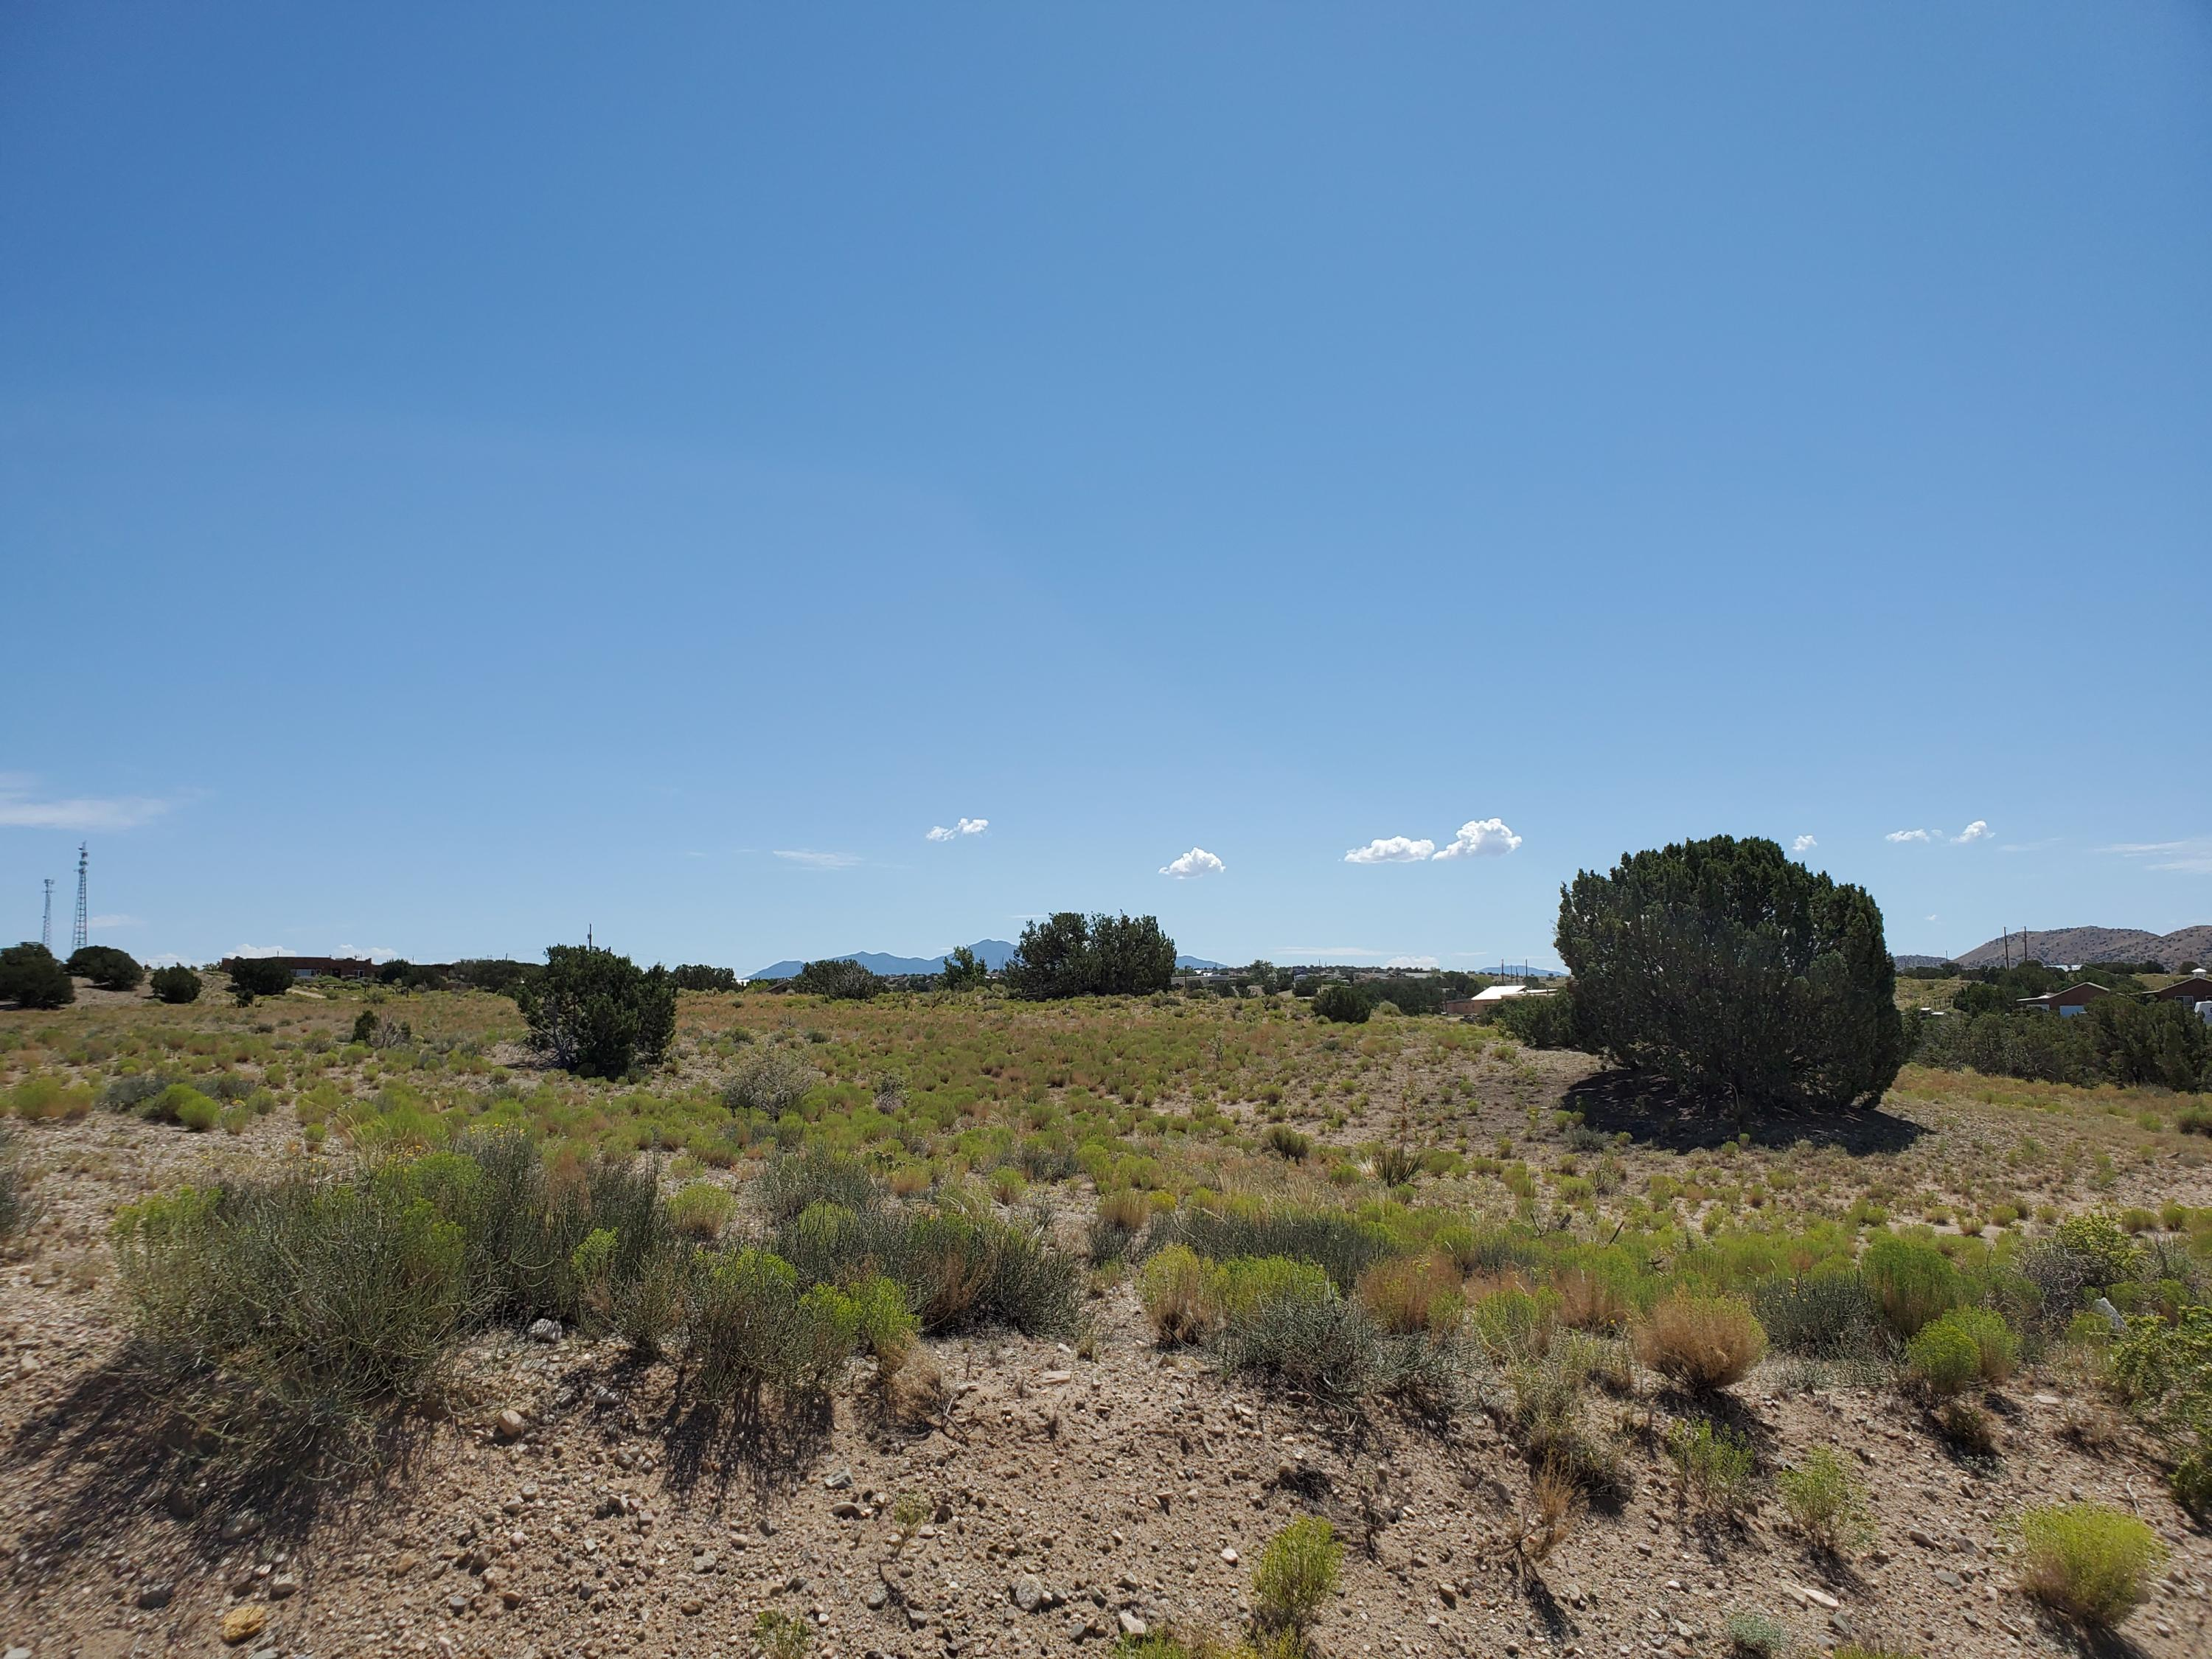 Camino de Dolores, Budaghers, NM 87001 - Budaghers, NM real estate listing